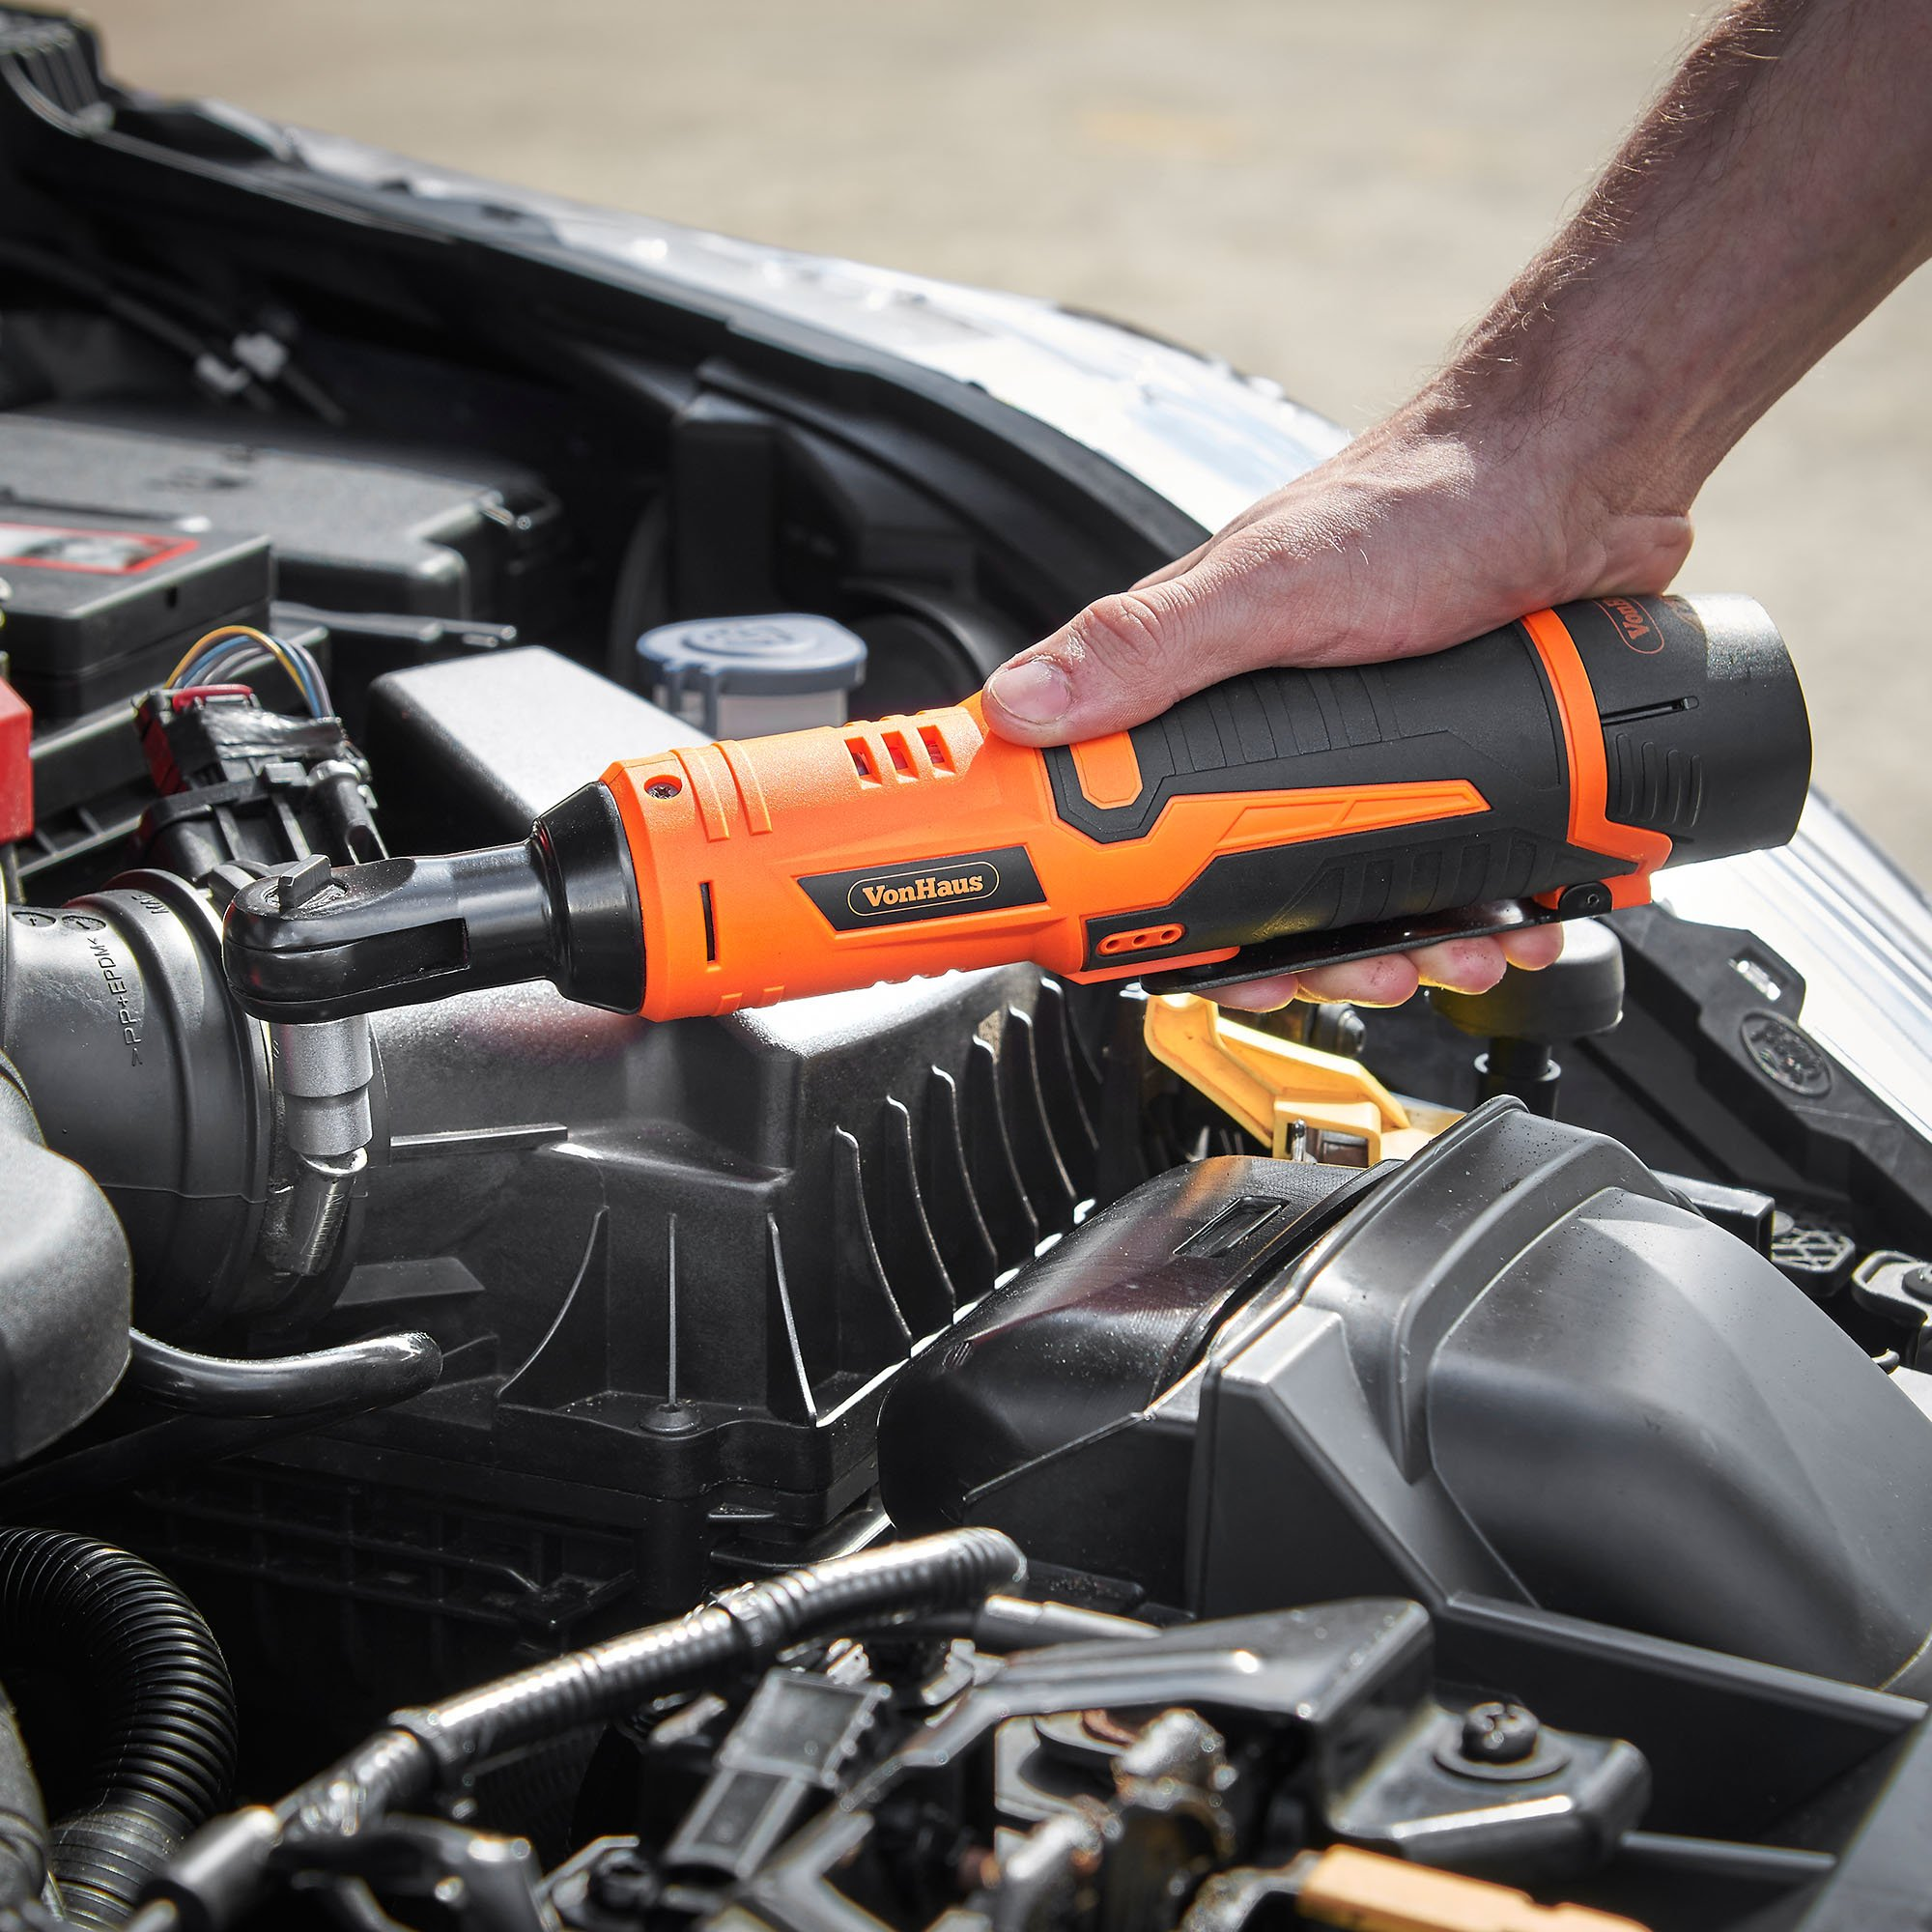 VonHaus Cordless Electric Ratchet Wrench Set with 12V Lithium-Ion Battery and Charger Kit 3/8'' Drive 15/145US by VonHaus (Image #4)